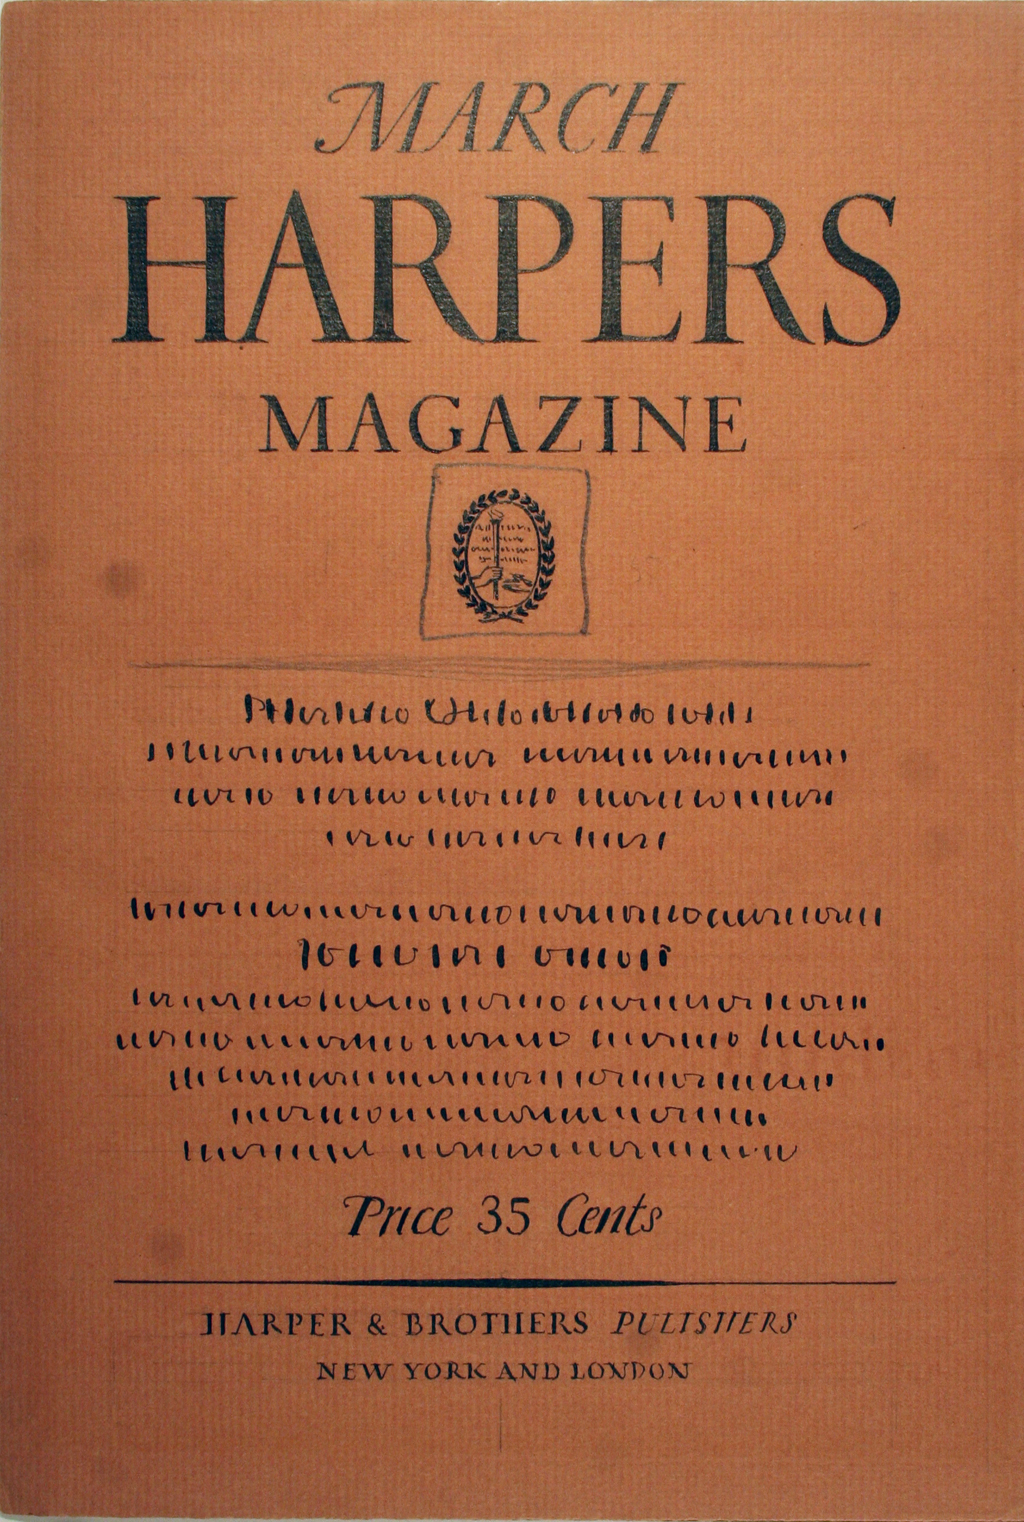 Comp for Harpers Magazine by W.A. Dwiggins (1925). Boston Public Library, 2001 Dwiggins Collection, Box 4, Folder 24.